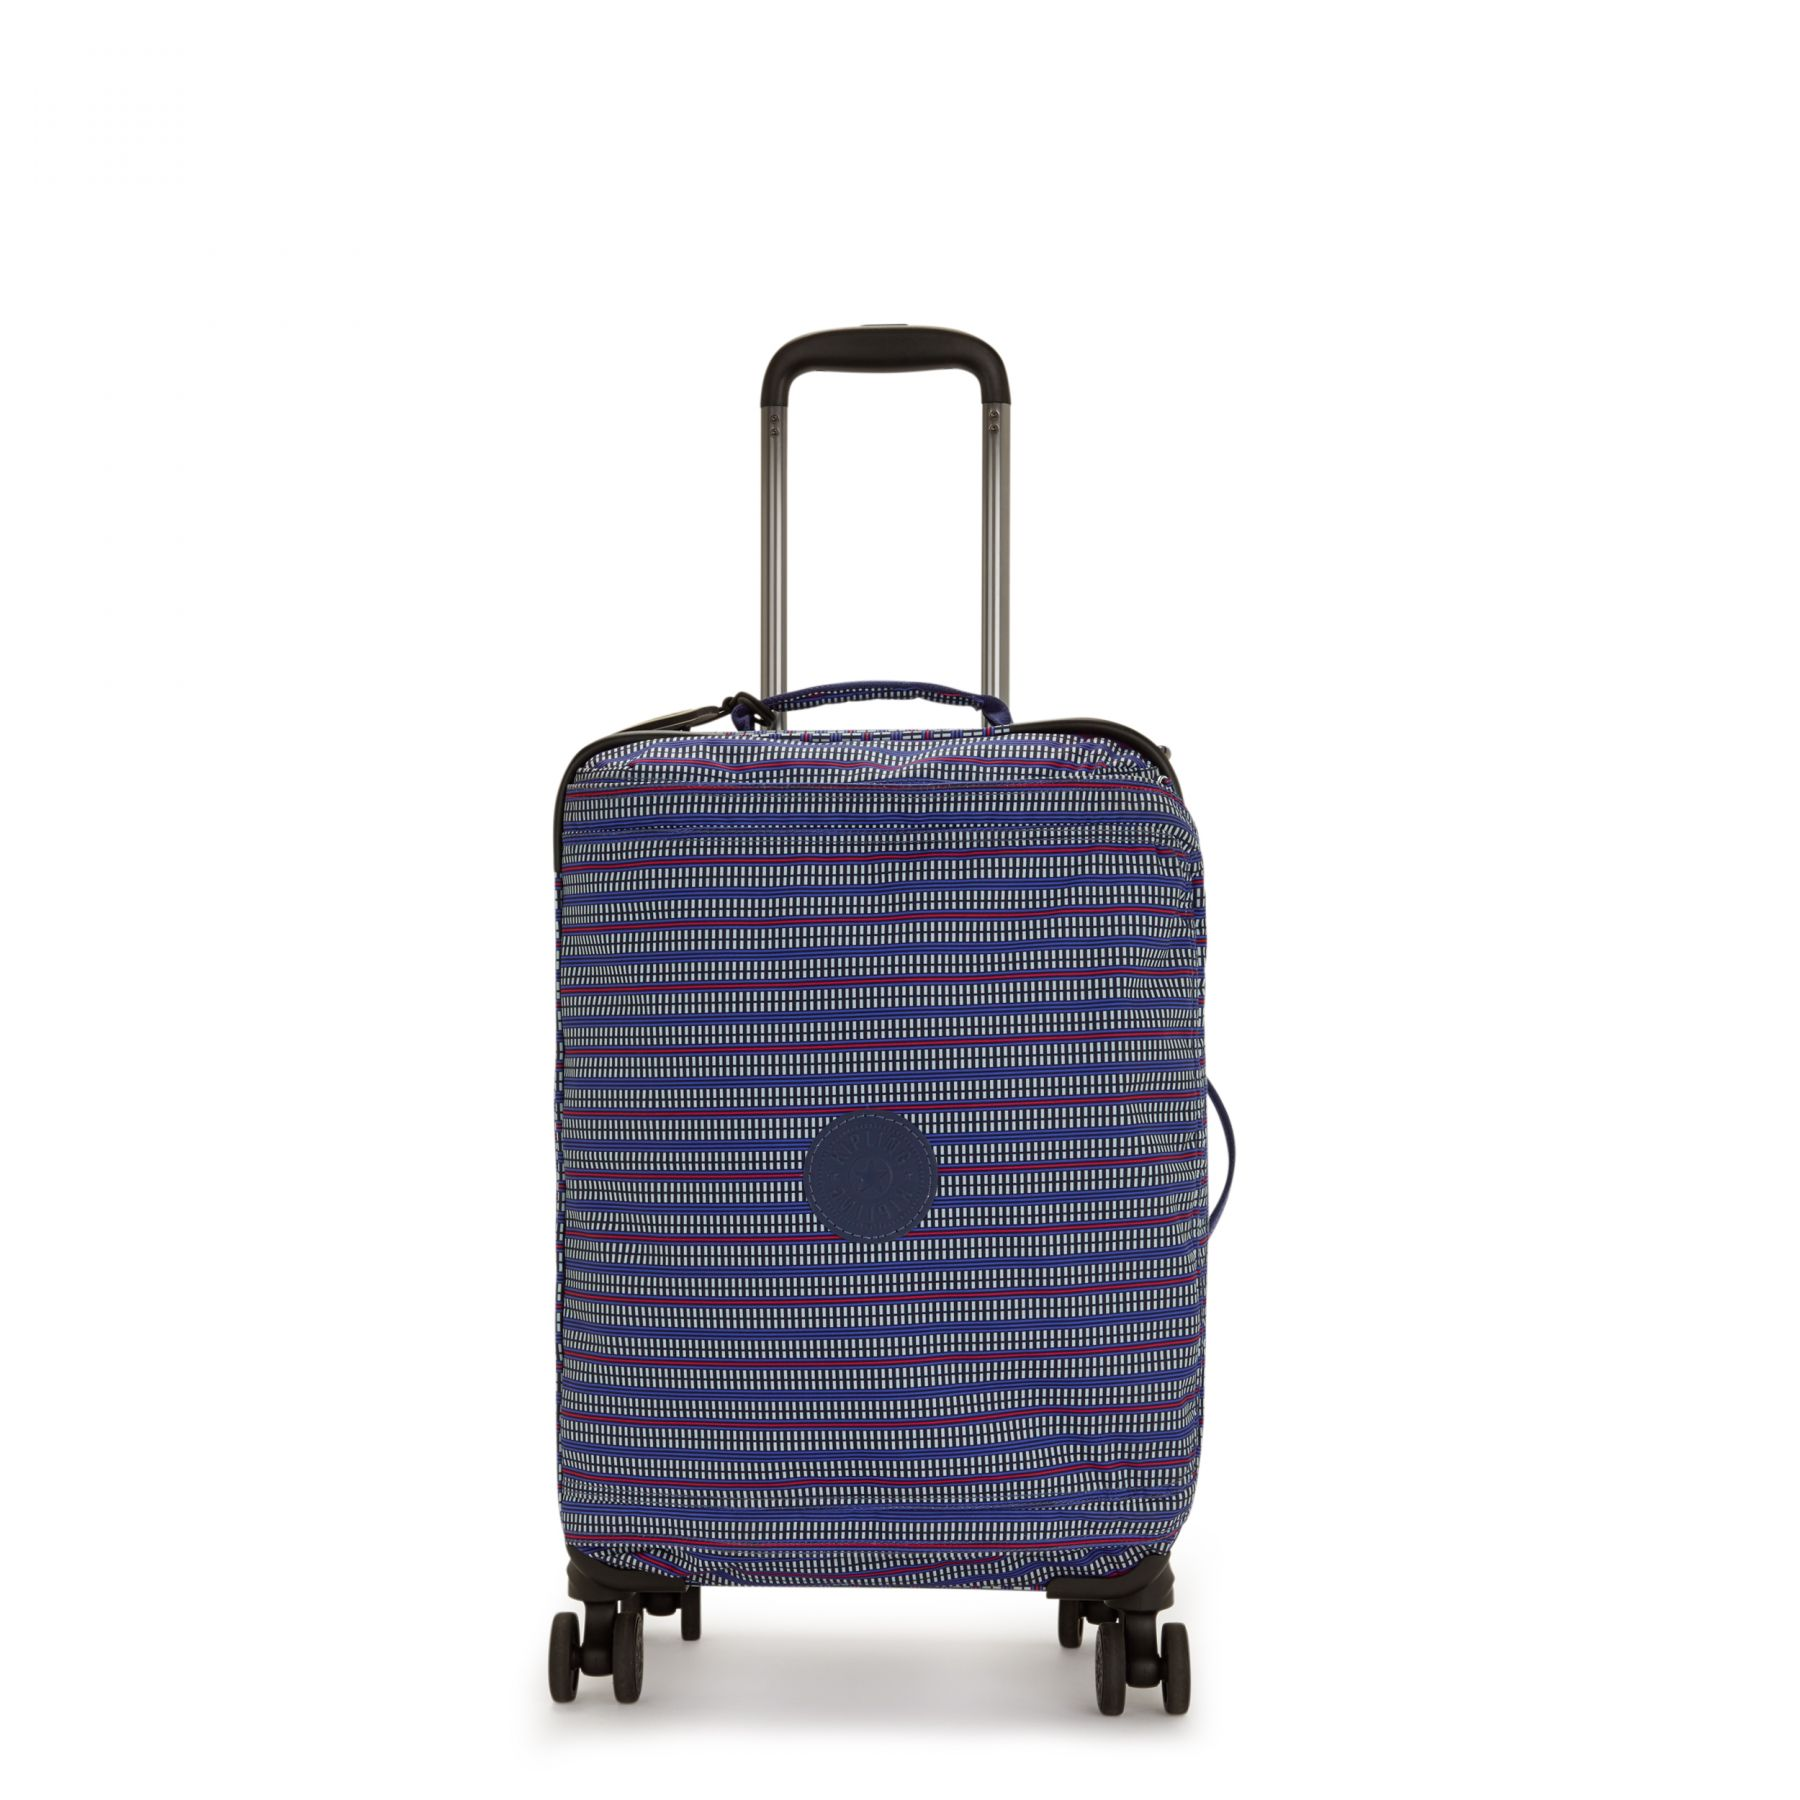 SPONTANEOUS S LUGGAGE by Kipling - Front view